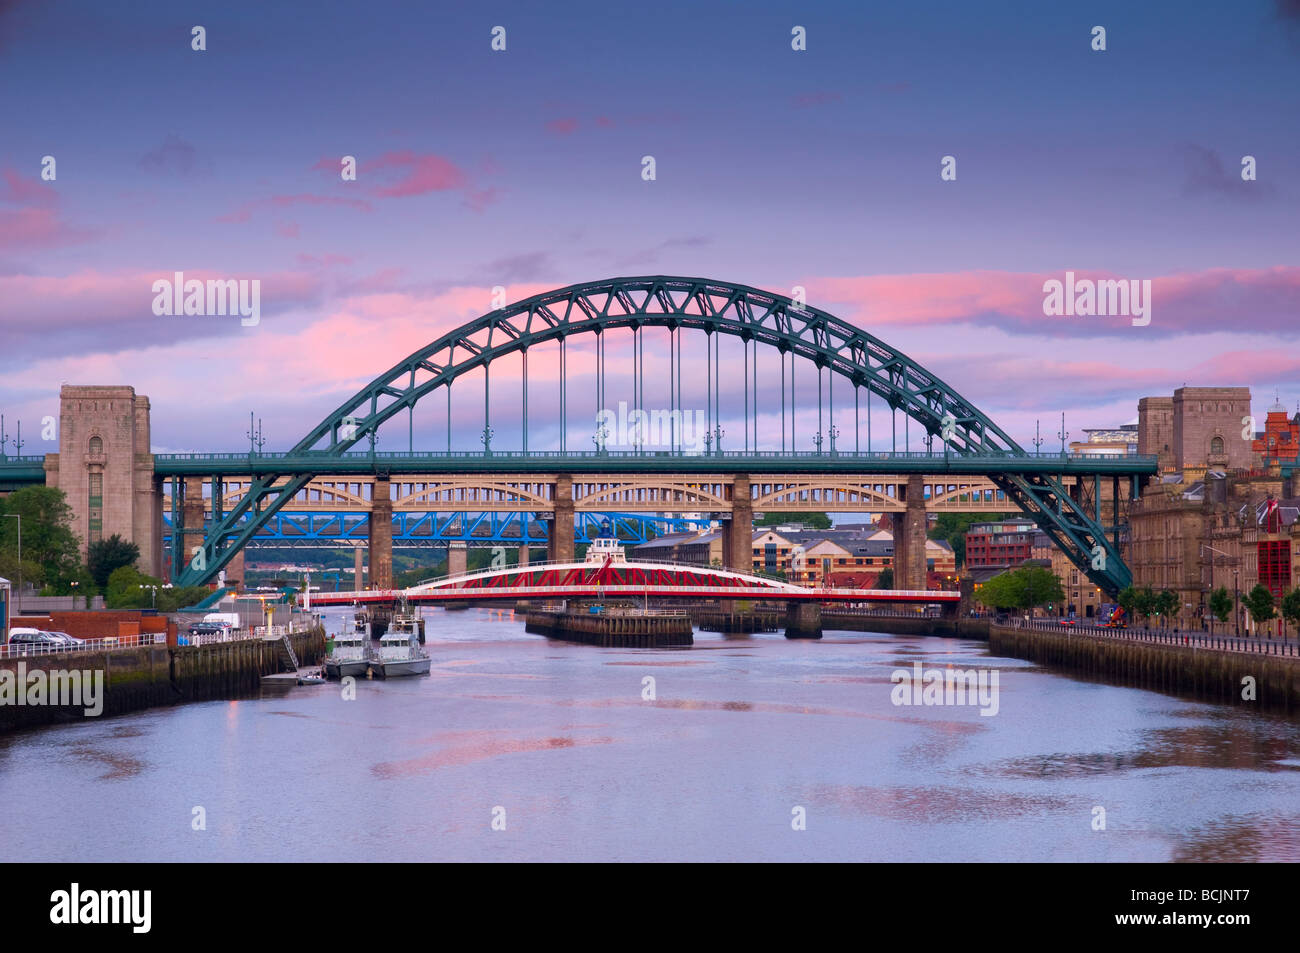 UK, England, Tyne and Wear, Newcastle and Gateshead, The Tyne and Swing Bridges over the River Tyne. - Stock Image